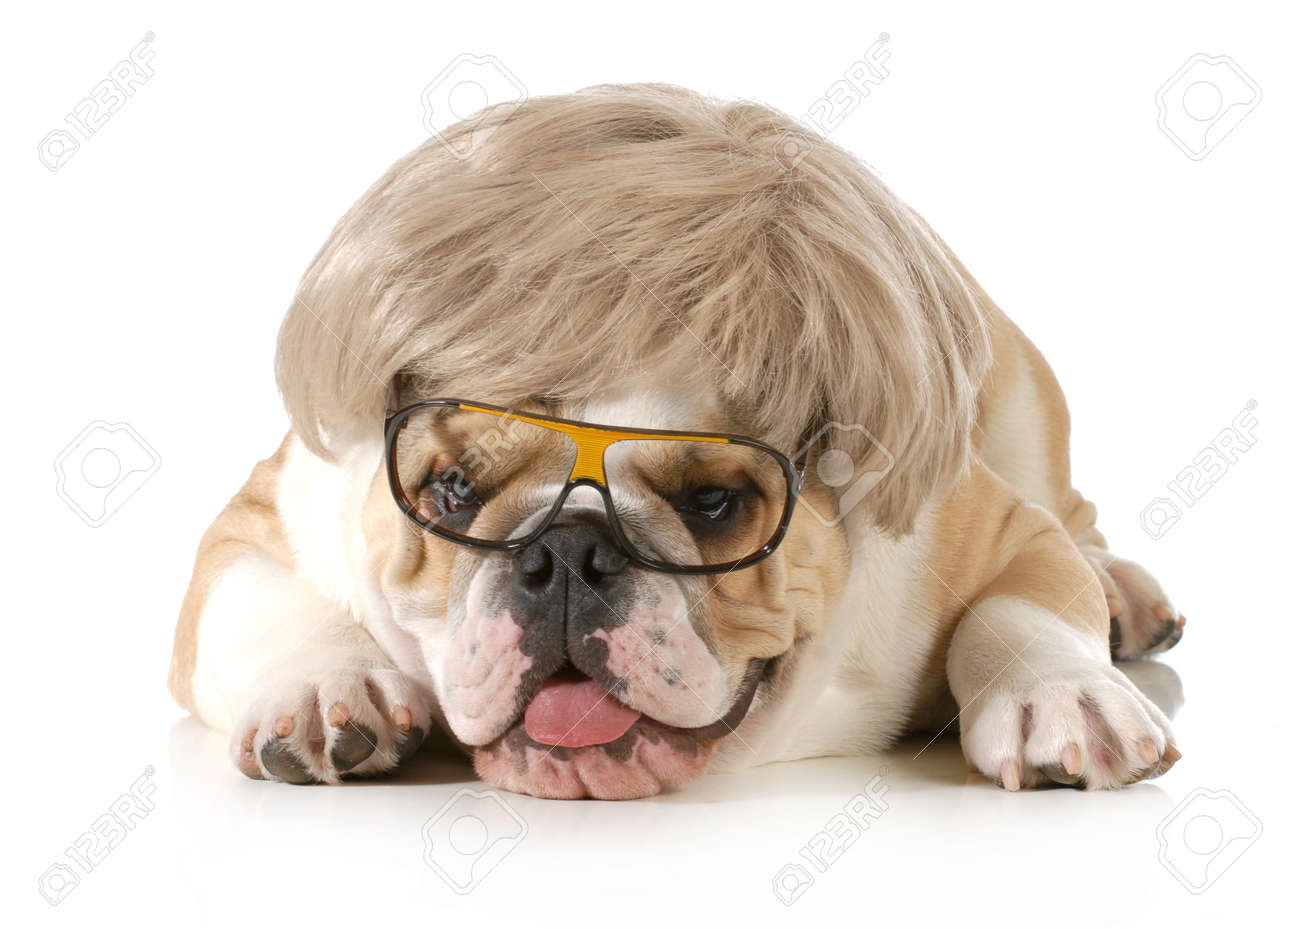 funny dog - english bulldog wearing silly wig and glasses isolated